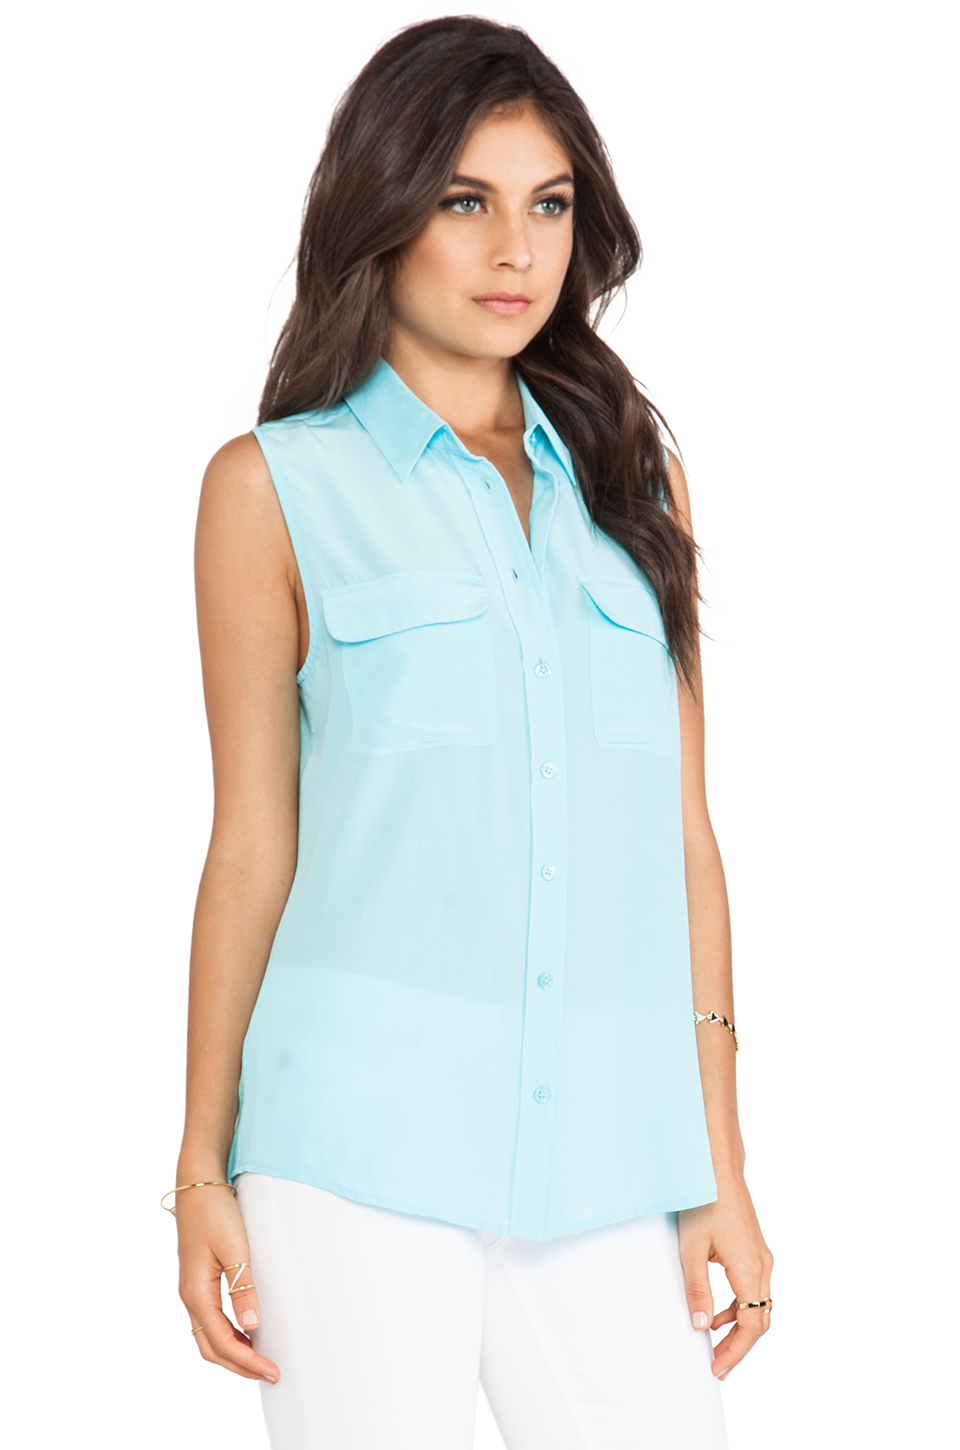 Equipment Sleeveless Slim Signature Blouse in Light Teal